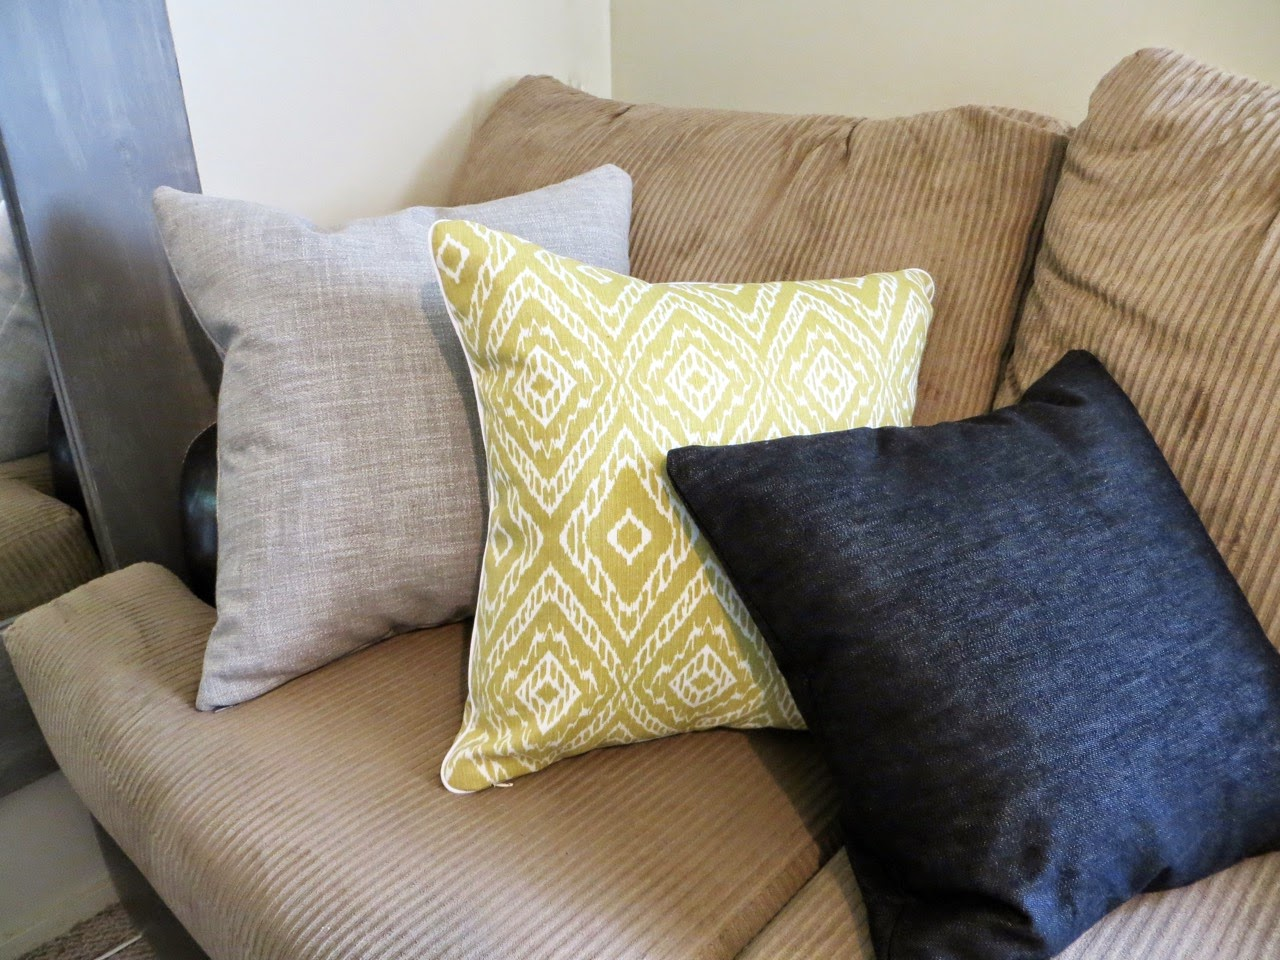 Throw Pillow Cover Pattern With Zipper : Throw Pillow Cover Sewing Tutorial (A How-to for Invisible Zippers & Piping)! The Project Lady